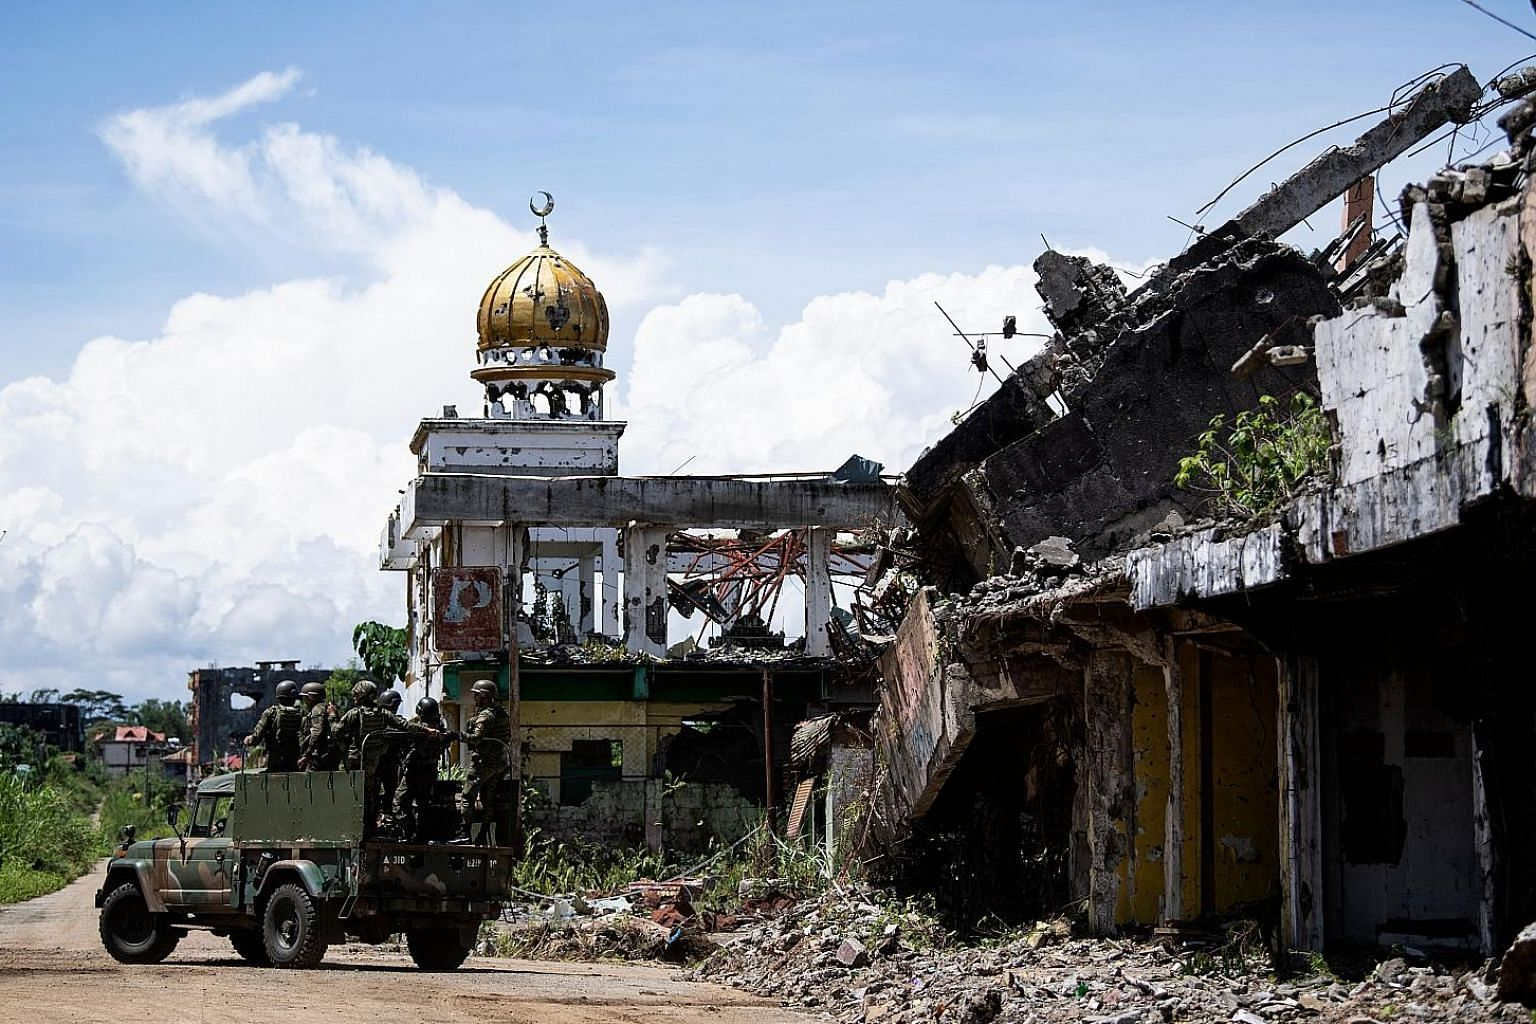 More than two years after the siege of Marawi by Muslim extremists, the heart of the city still lies in complete ruin. Grievance, resentment and despair are building up, and community leaders in refugee camps wonder if they can ever return to and reb